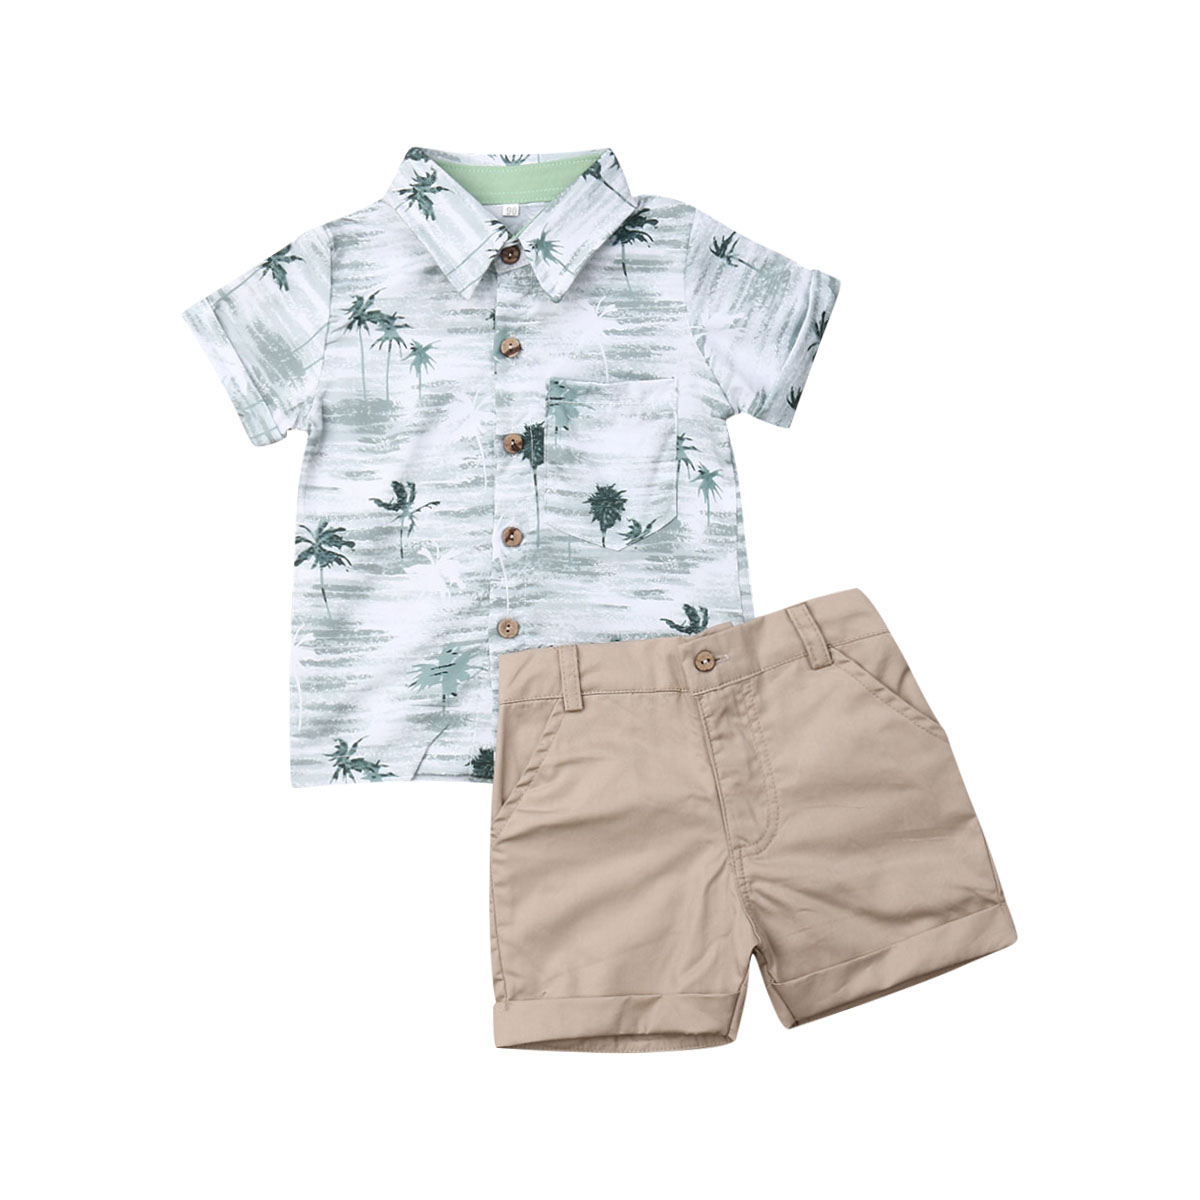 Baby Boy Summer Shorts Boy Cotton Summer T-Shirt and Elastic Pants Solid Clothes 2Pcs Outfits Toddler Set